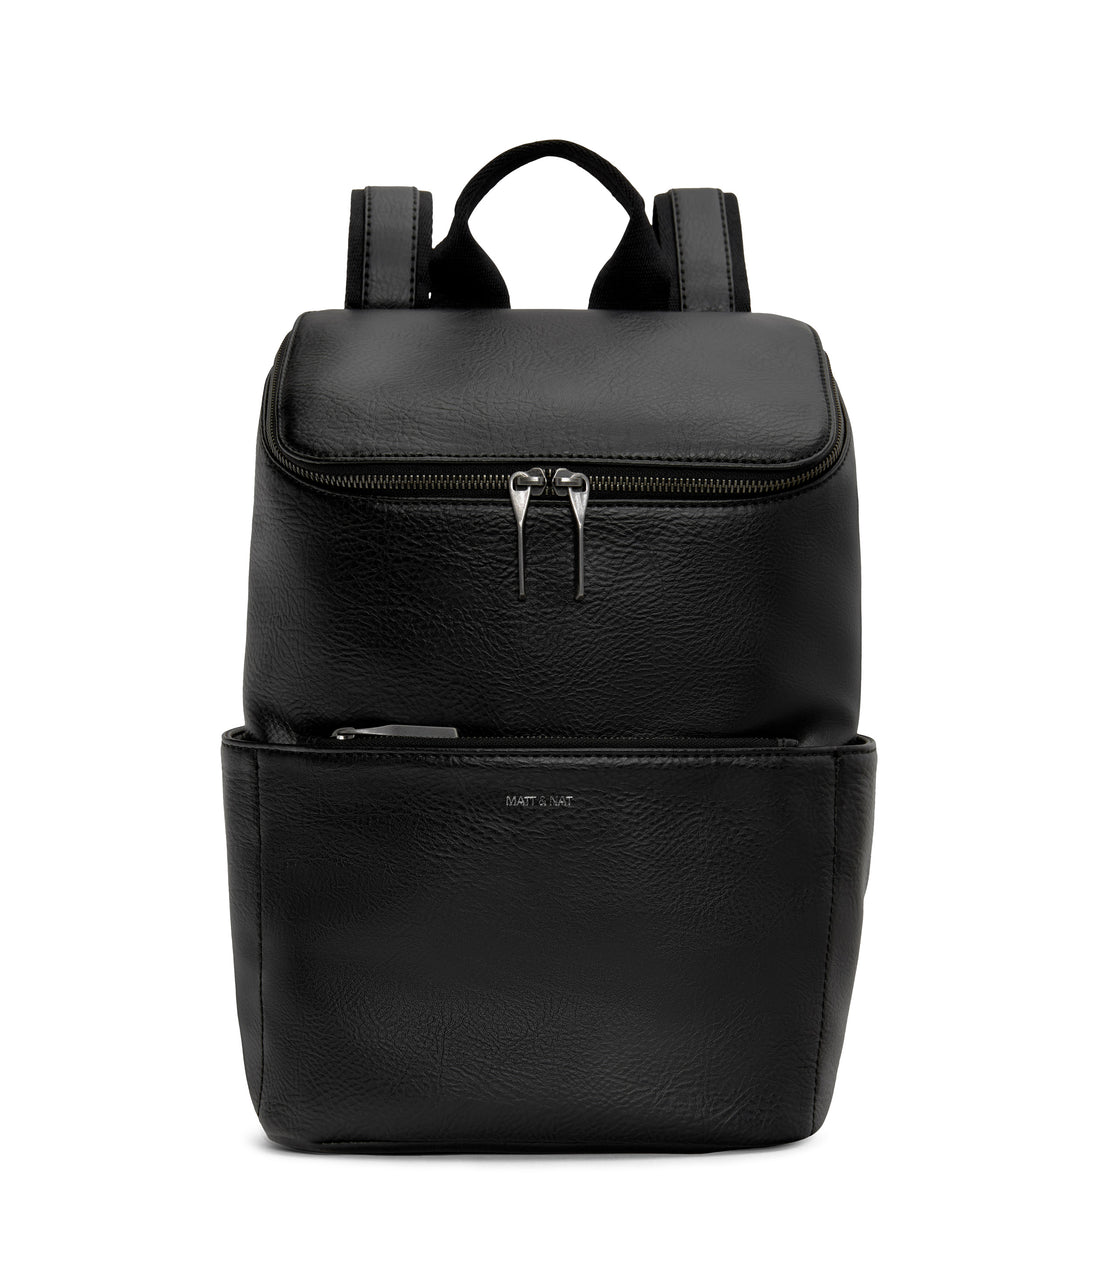 Brave Backpack - Black